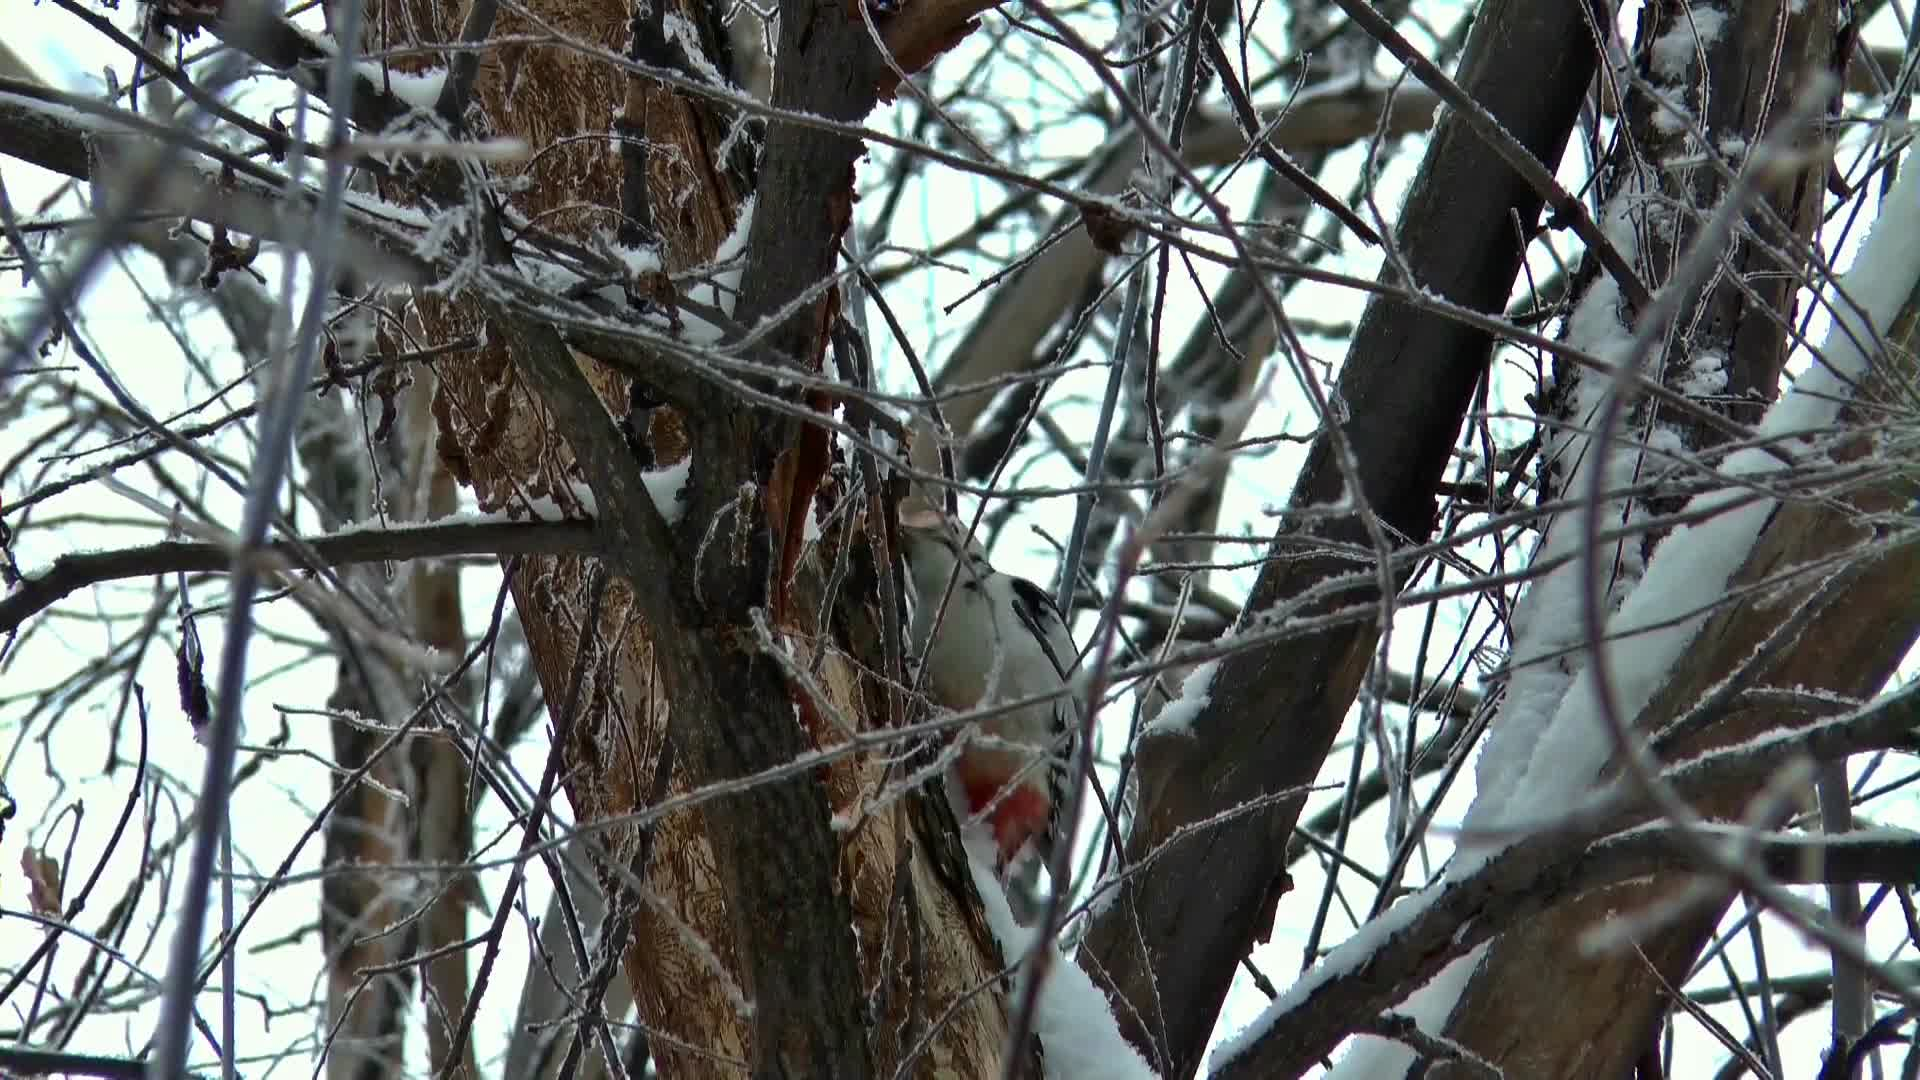 Video of a woodpecker